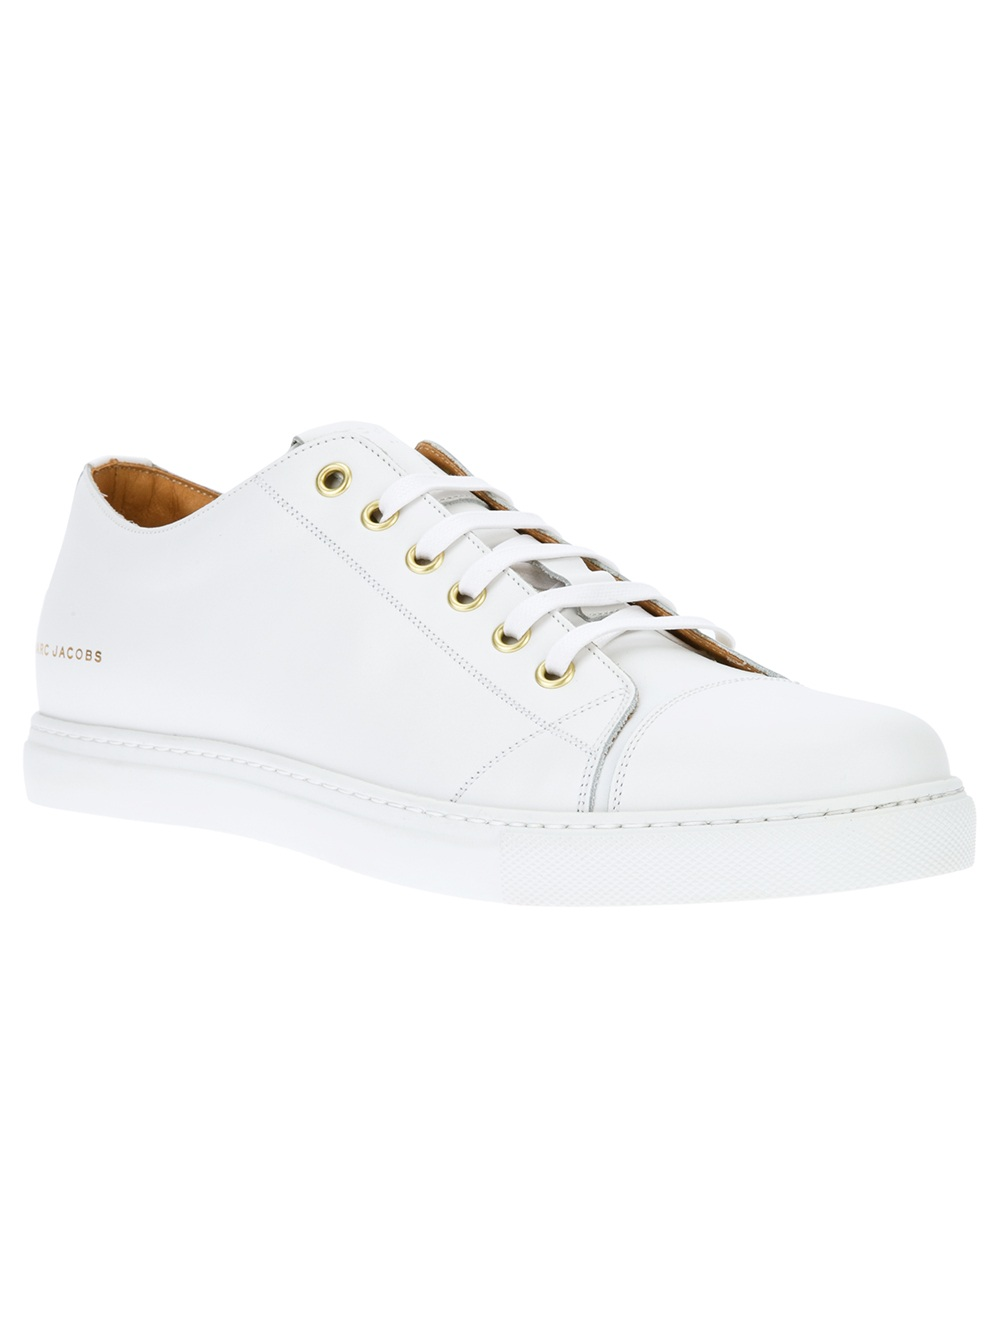 Marc Jacobs Leather Lace-Up Sneaker in